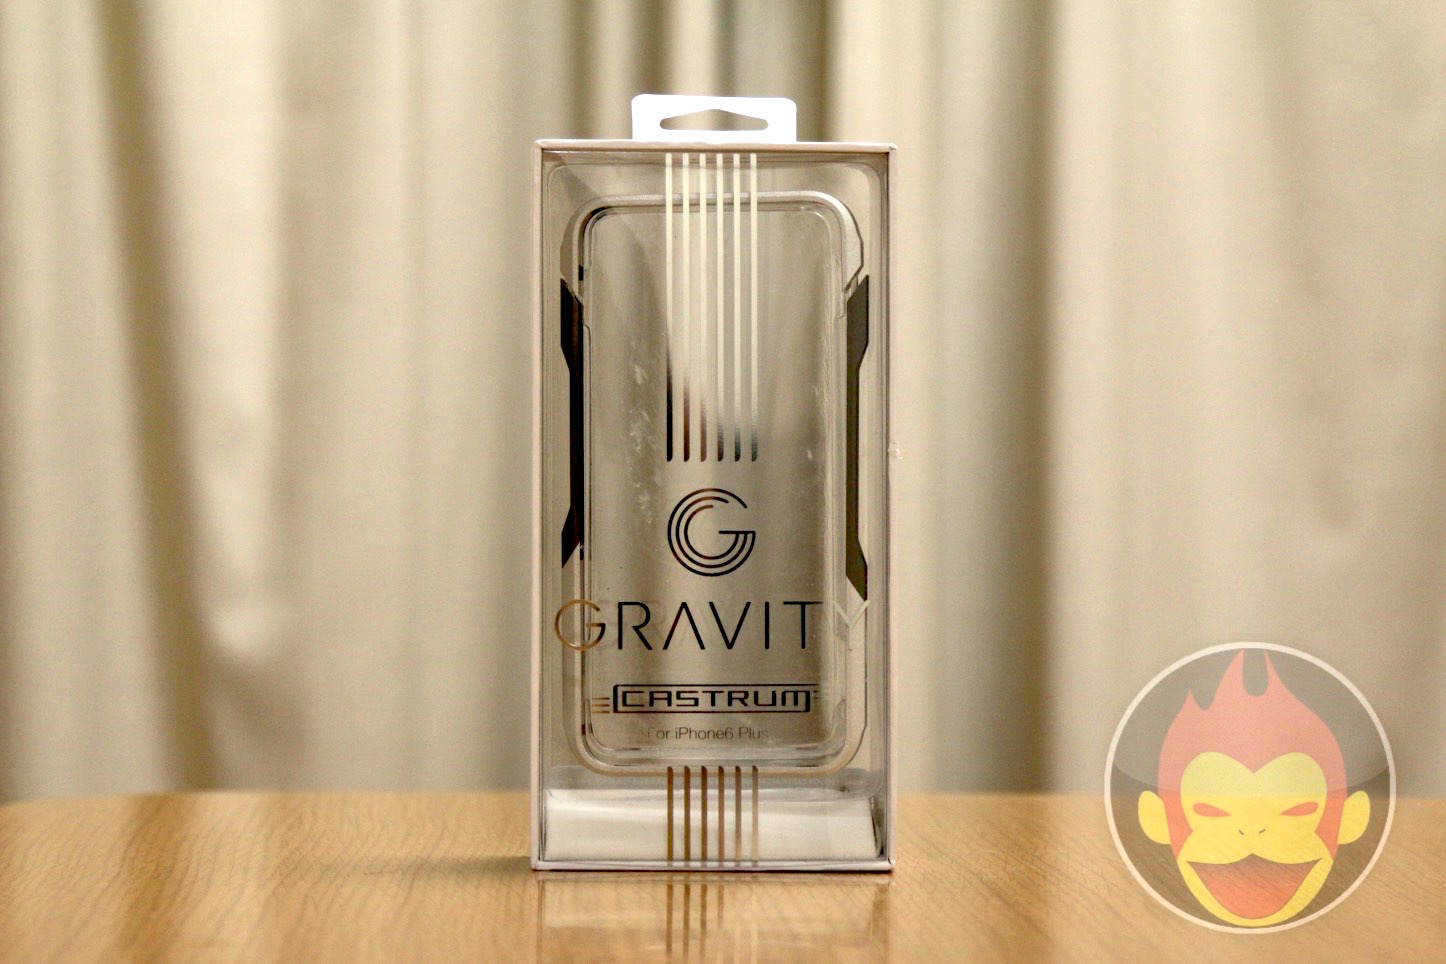 GRAVITY CASTRUM iPhone 6 Plus